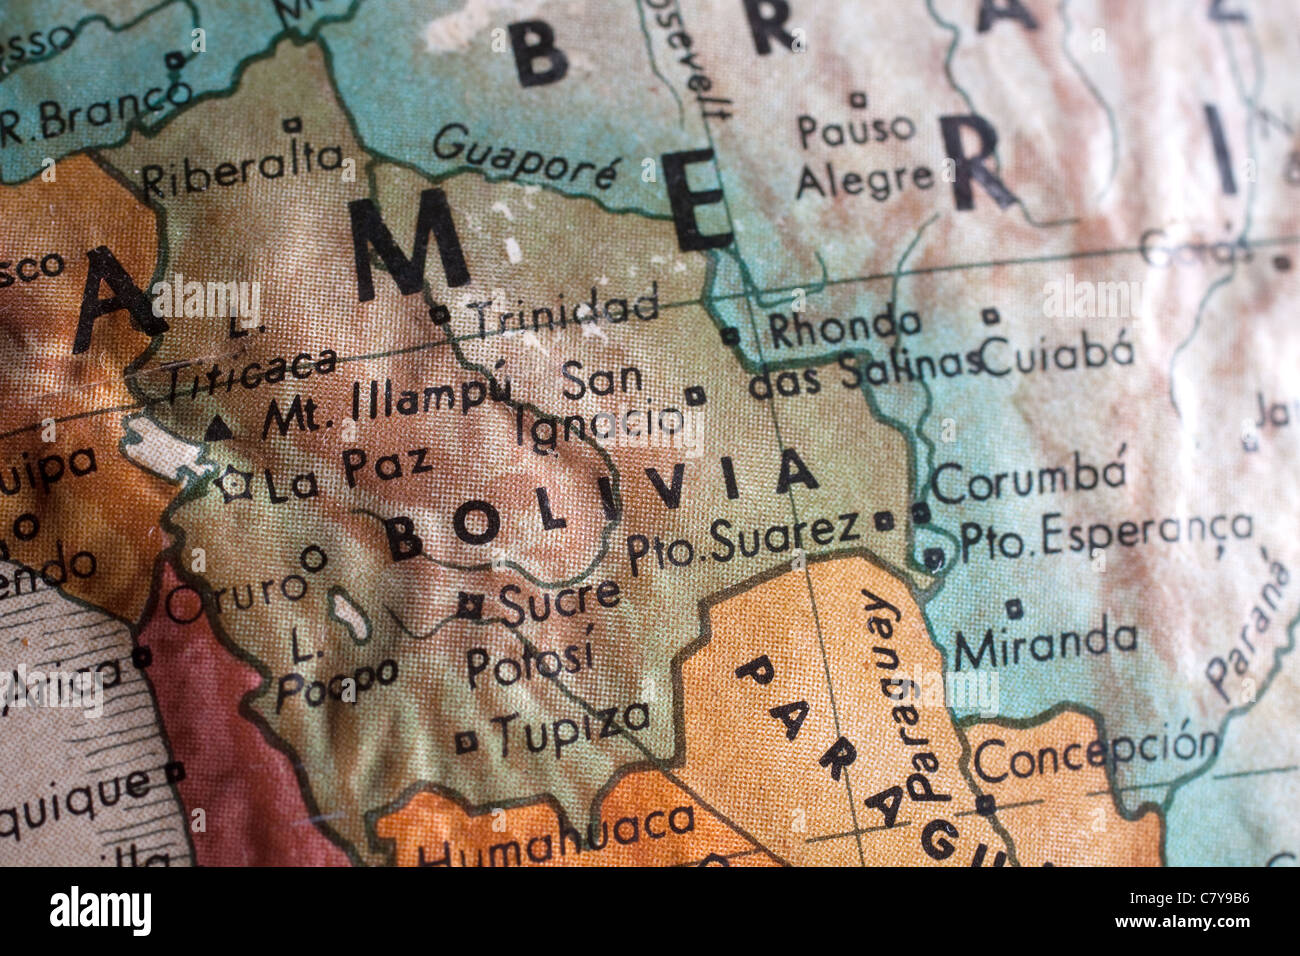 Map of Bolivia - Stock Image